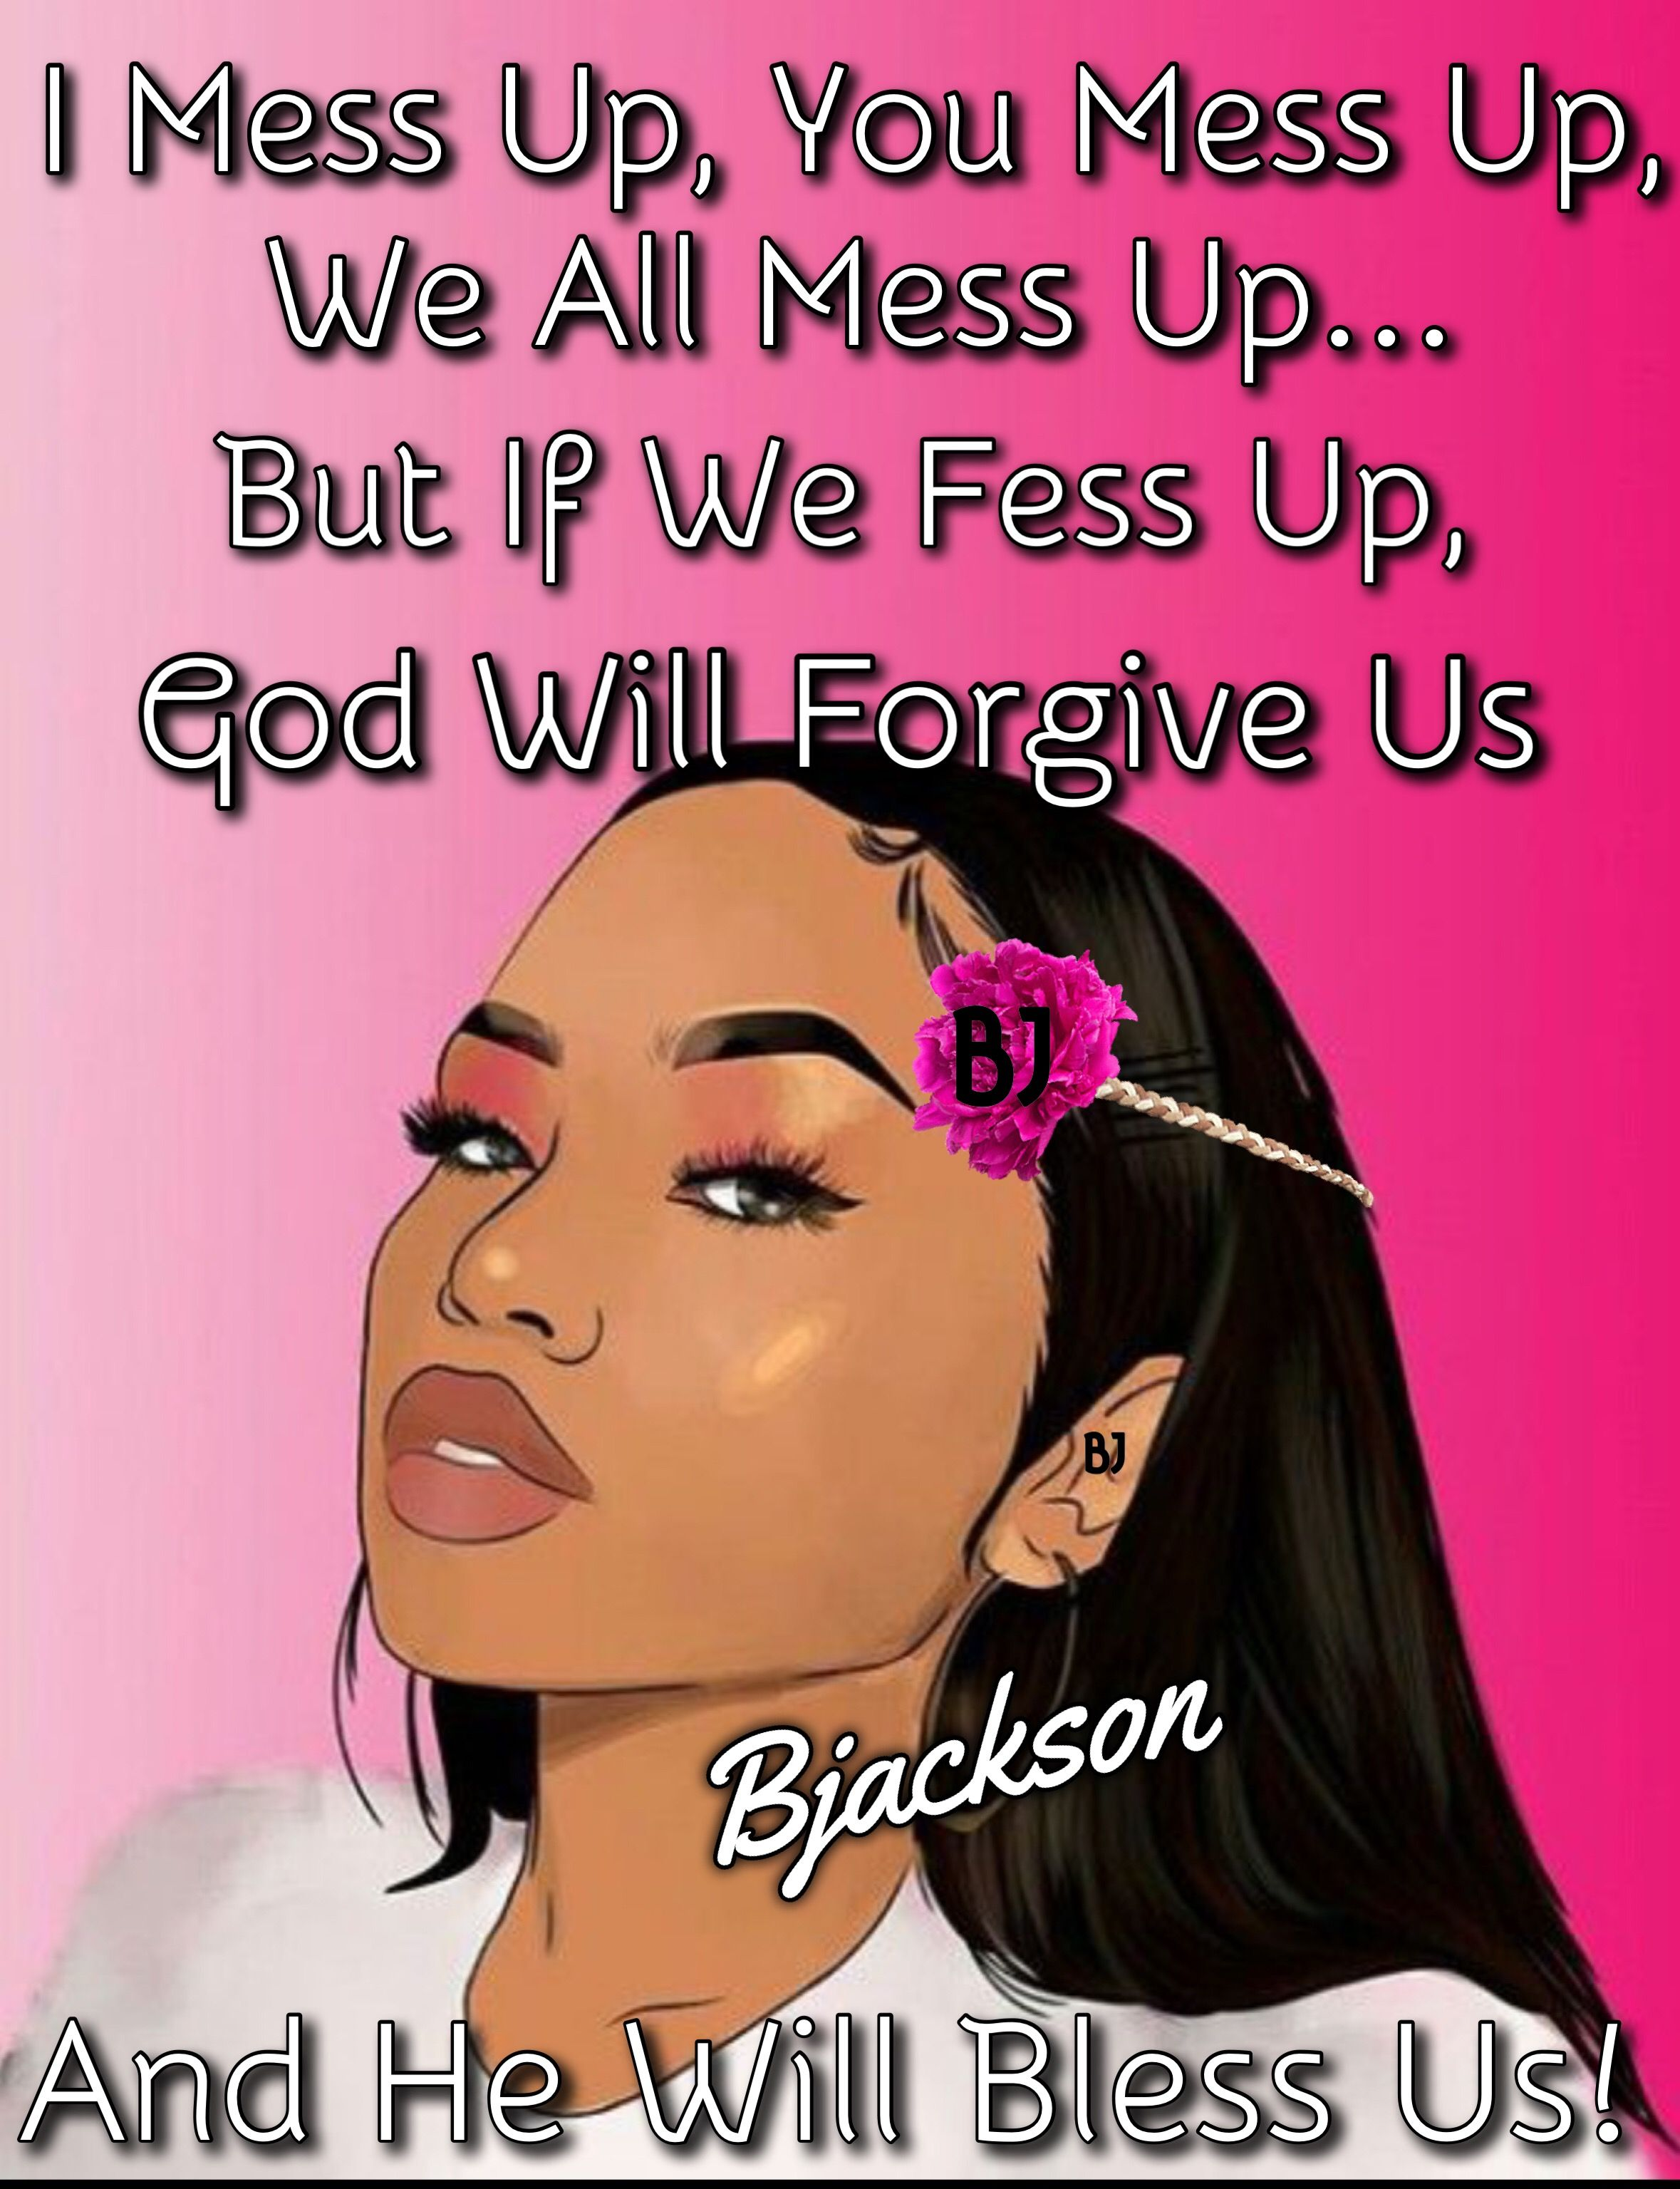 Pin By Lisa Morris On Encouragement African American Quotes Christian Motivational Quotes Black Women Quotes